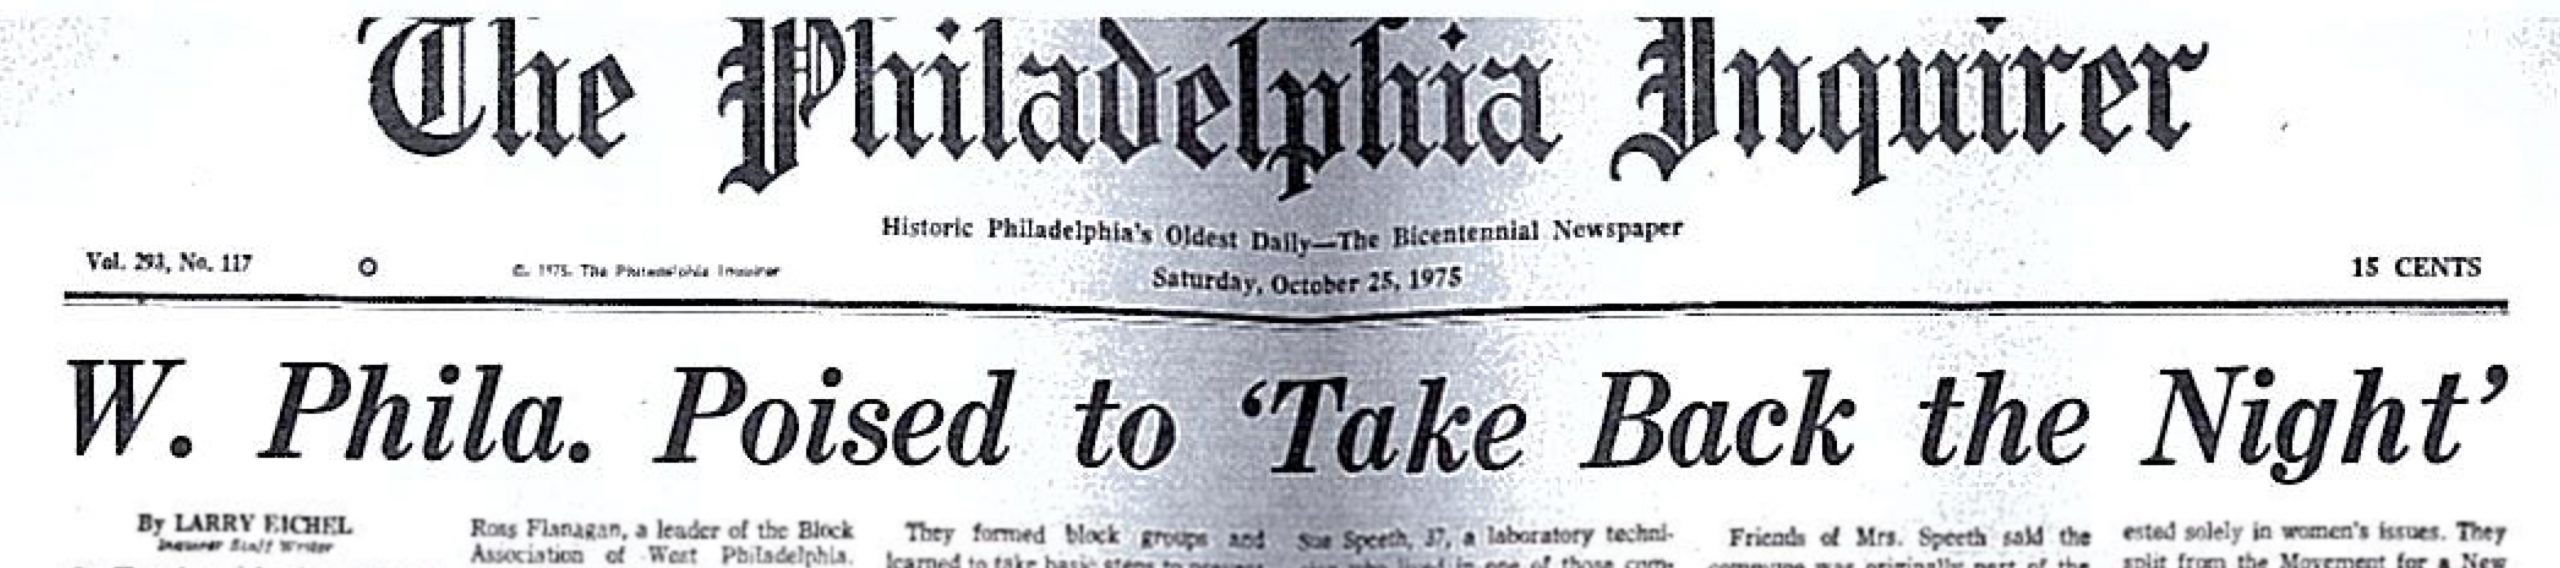 "An article on the Philadelphia Inquirer titled ""West Philadelphia posted to Take Back the Night"""